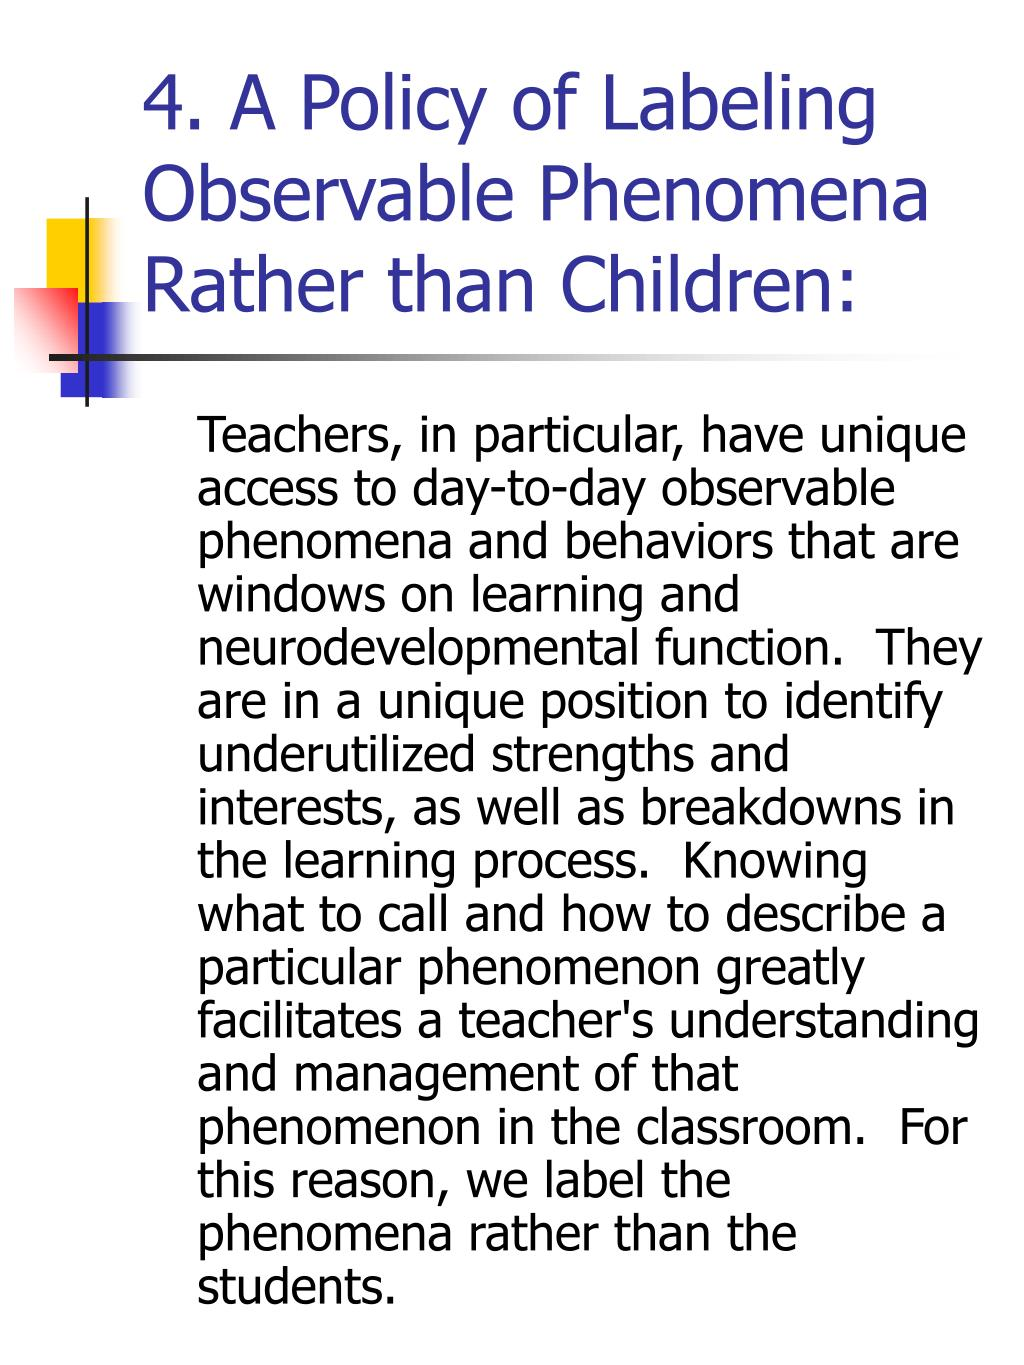 4. A Policy of Labeling Observable Phenomena Rather than Children: